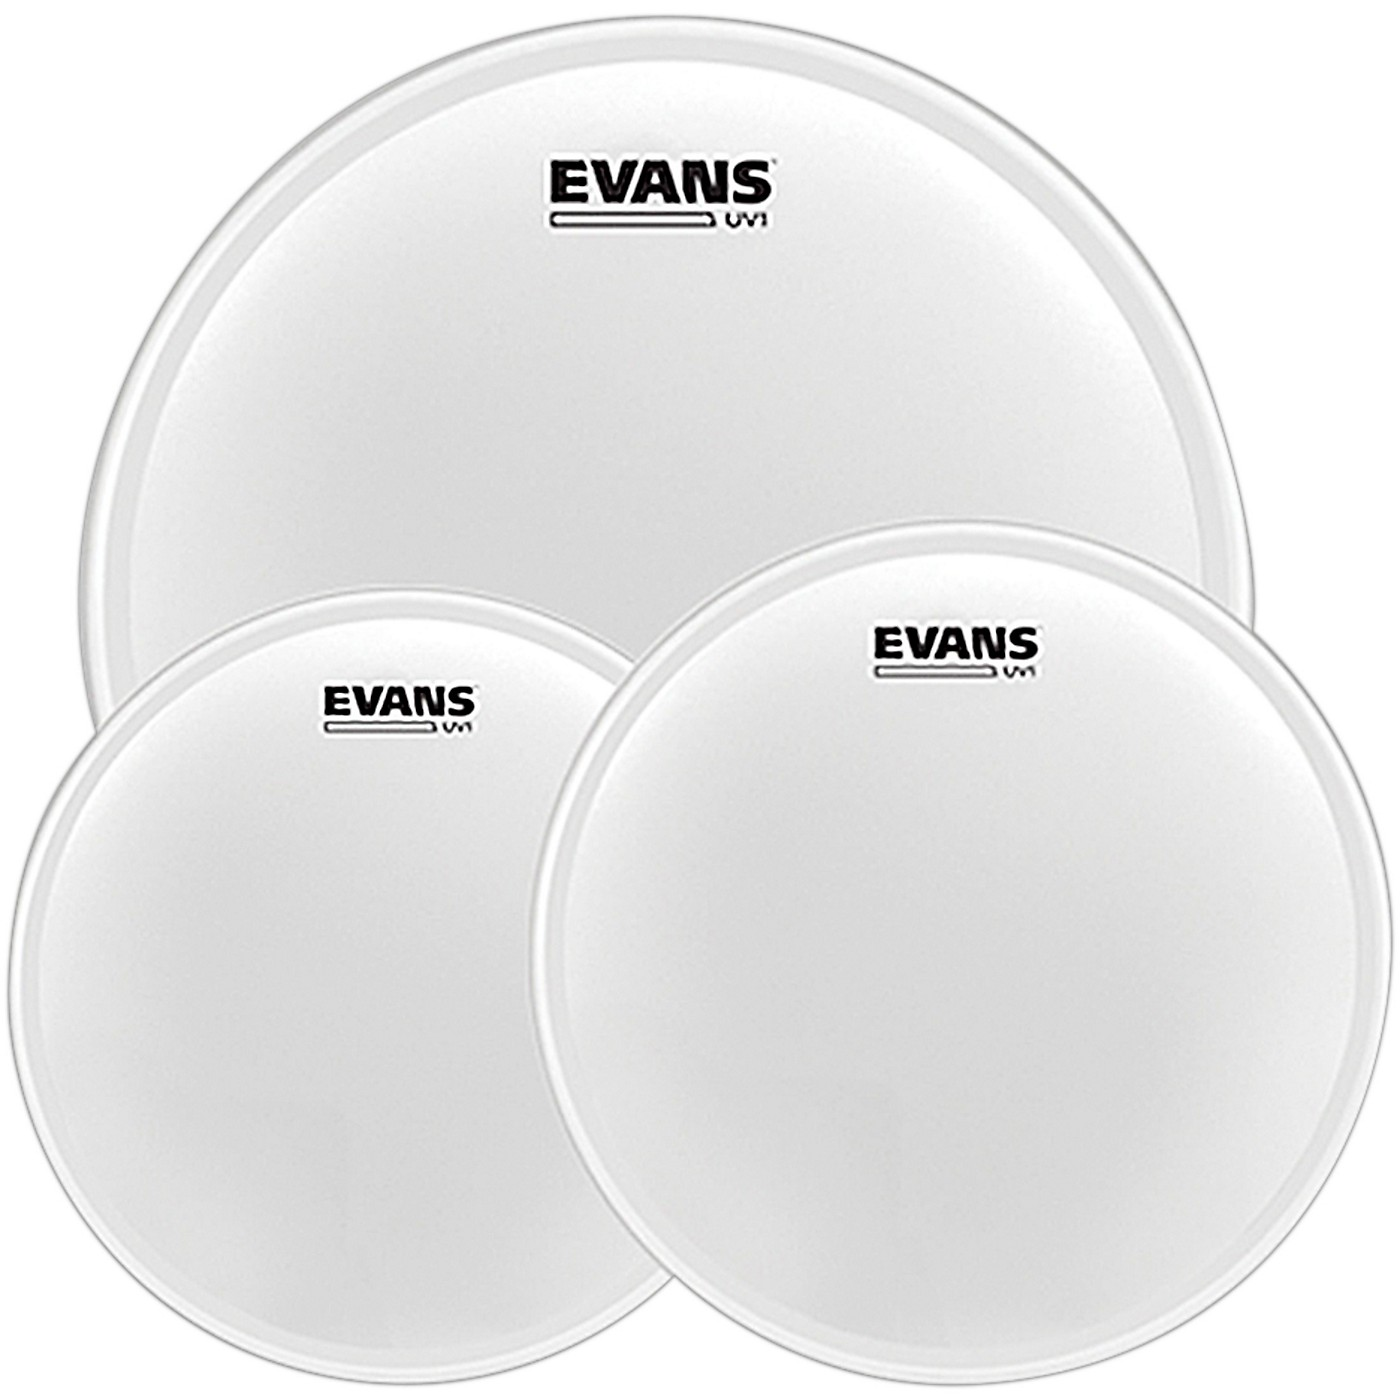 Evans UV1 Tom Pack with Free 14 in. UV1 Snare Head thumbnail